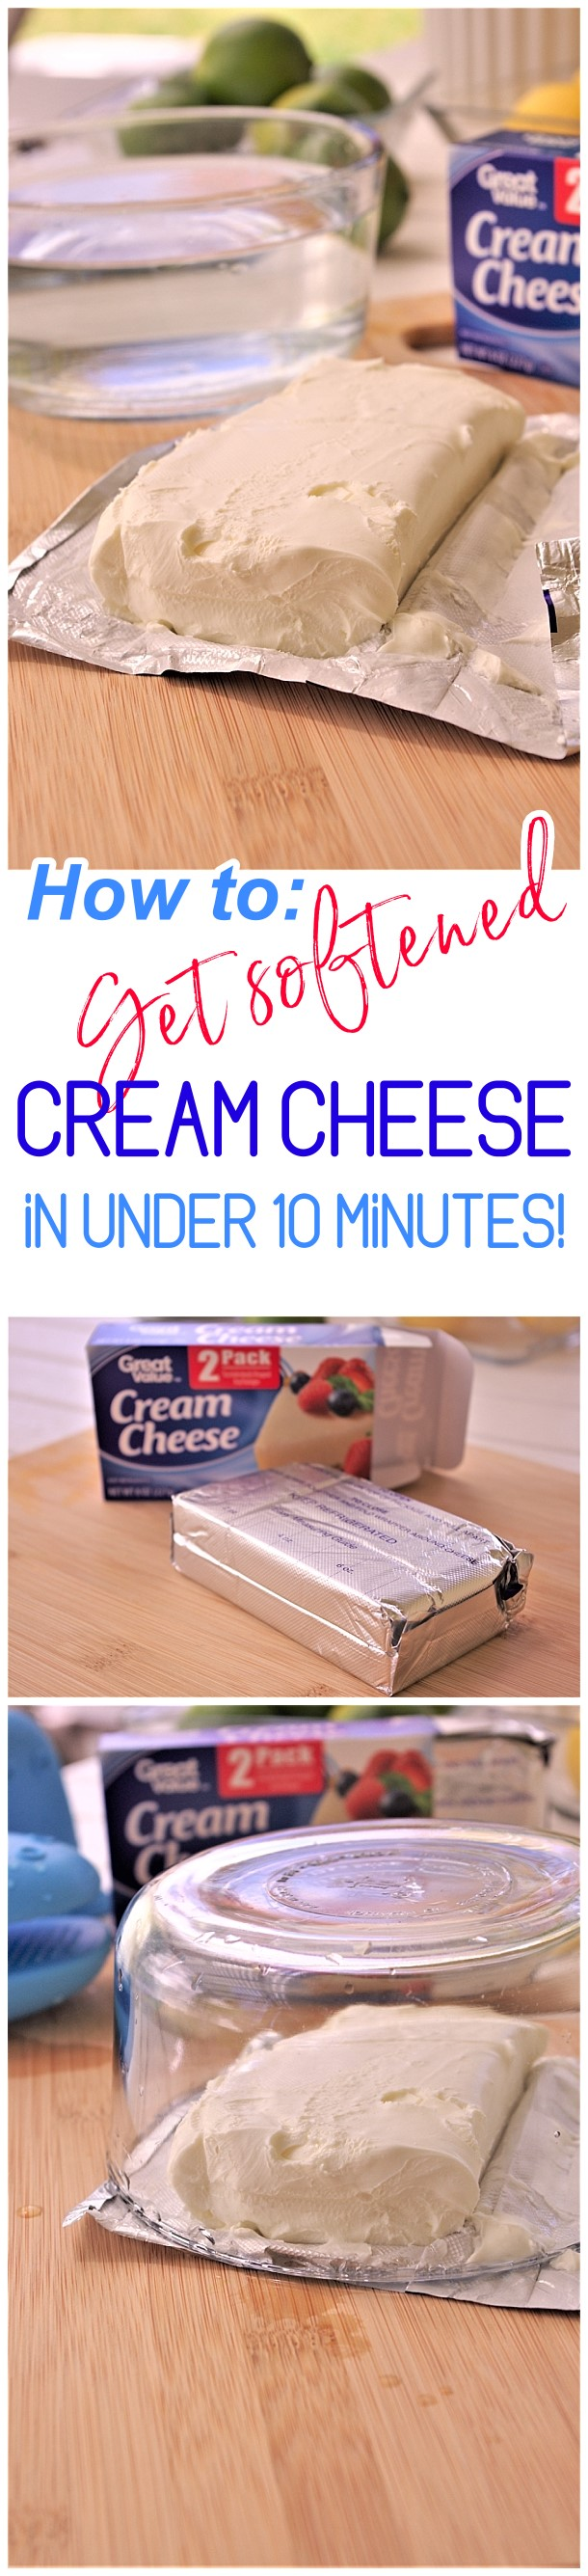 Clever Baking Hack - How to Get Softened Cream Cheese Not Melted in Under 10 Minutes EASY - Dreaming in DIY #bakinghack #softenedcreamcheese #creamcheesehack #kitchenhacks #cookinghacks #cookingtips #bakingtips #quicksoftenedcreamcheese